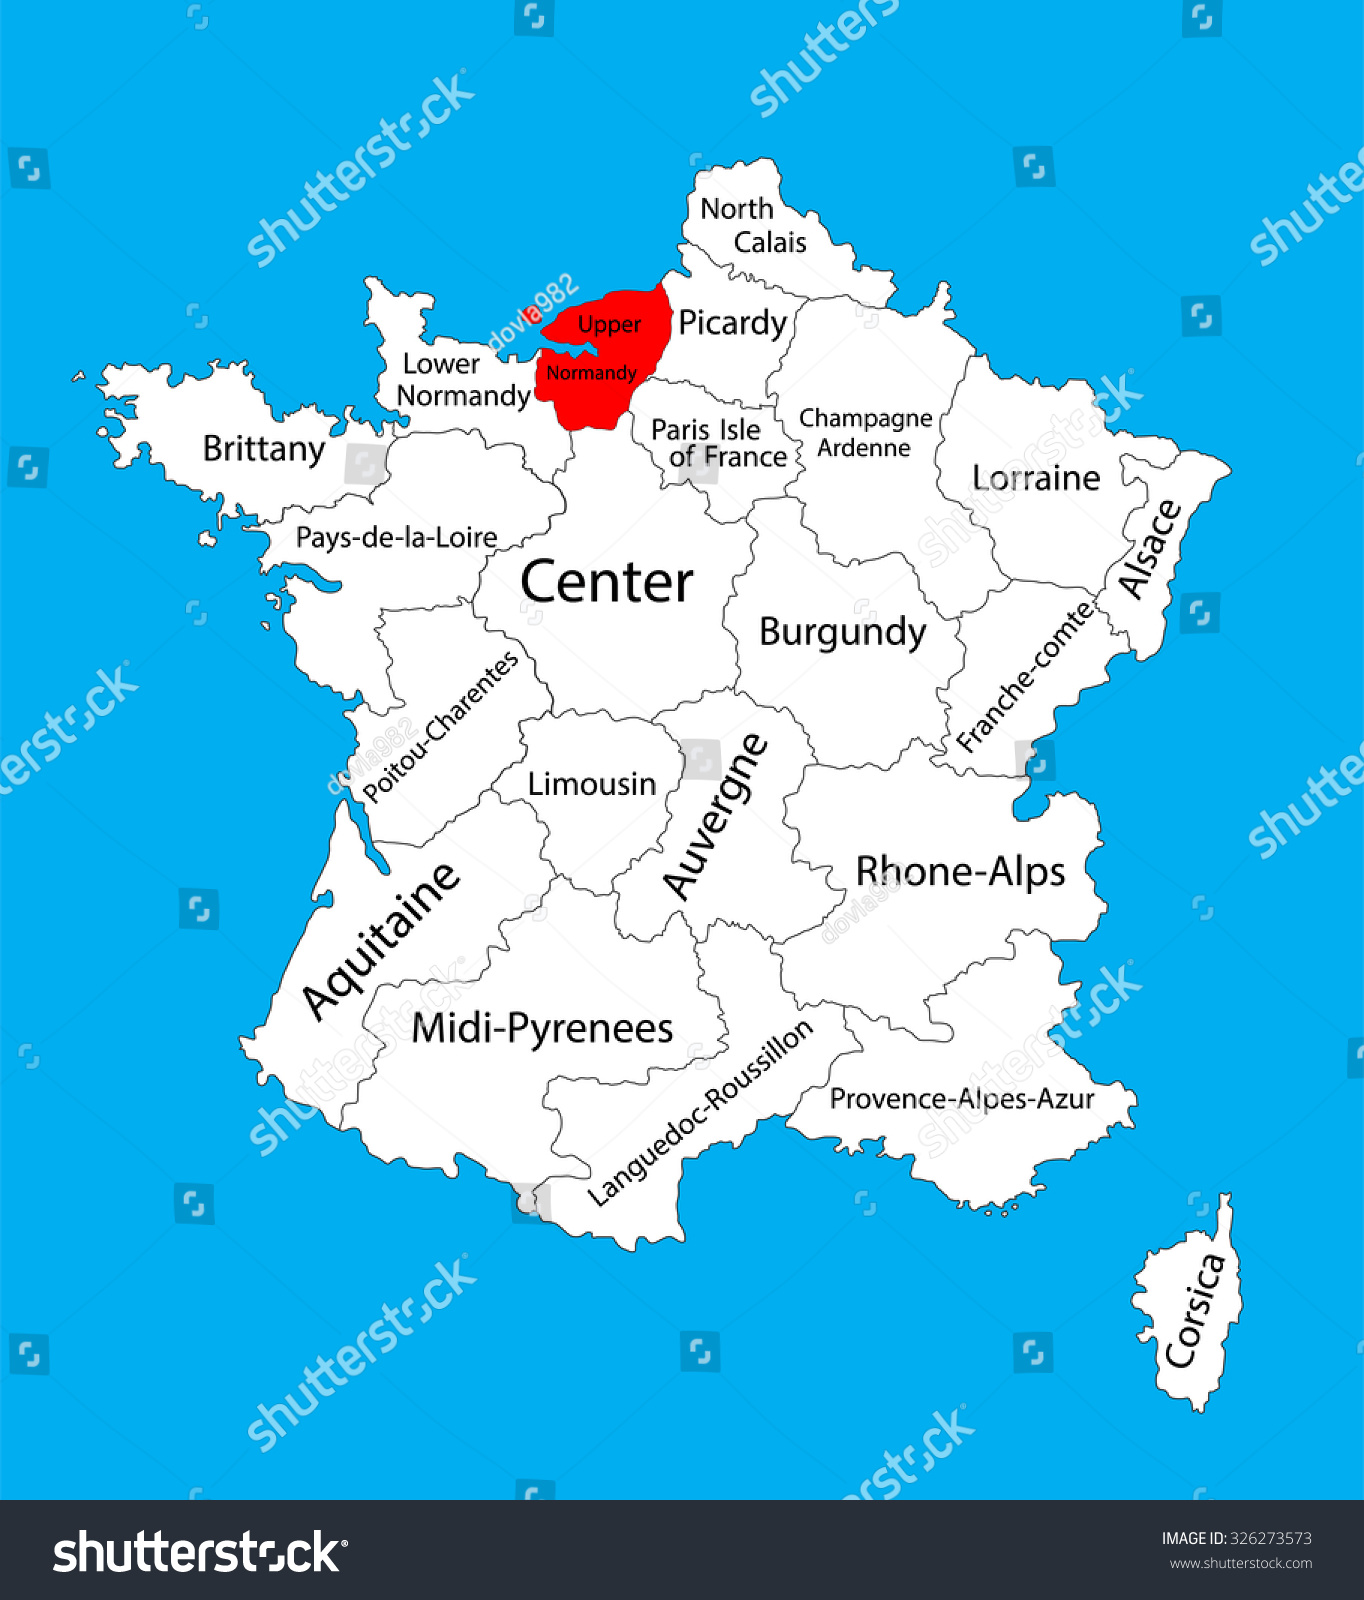 Vector map state upper normandy location vector de stock326273573 vector map of state upper normandy location on france france vector map gumiabroncs Gallery